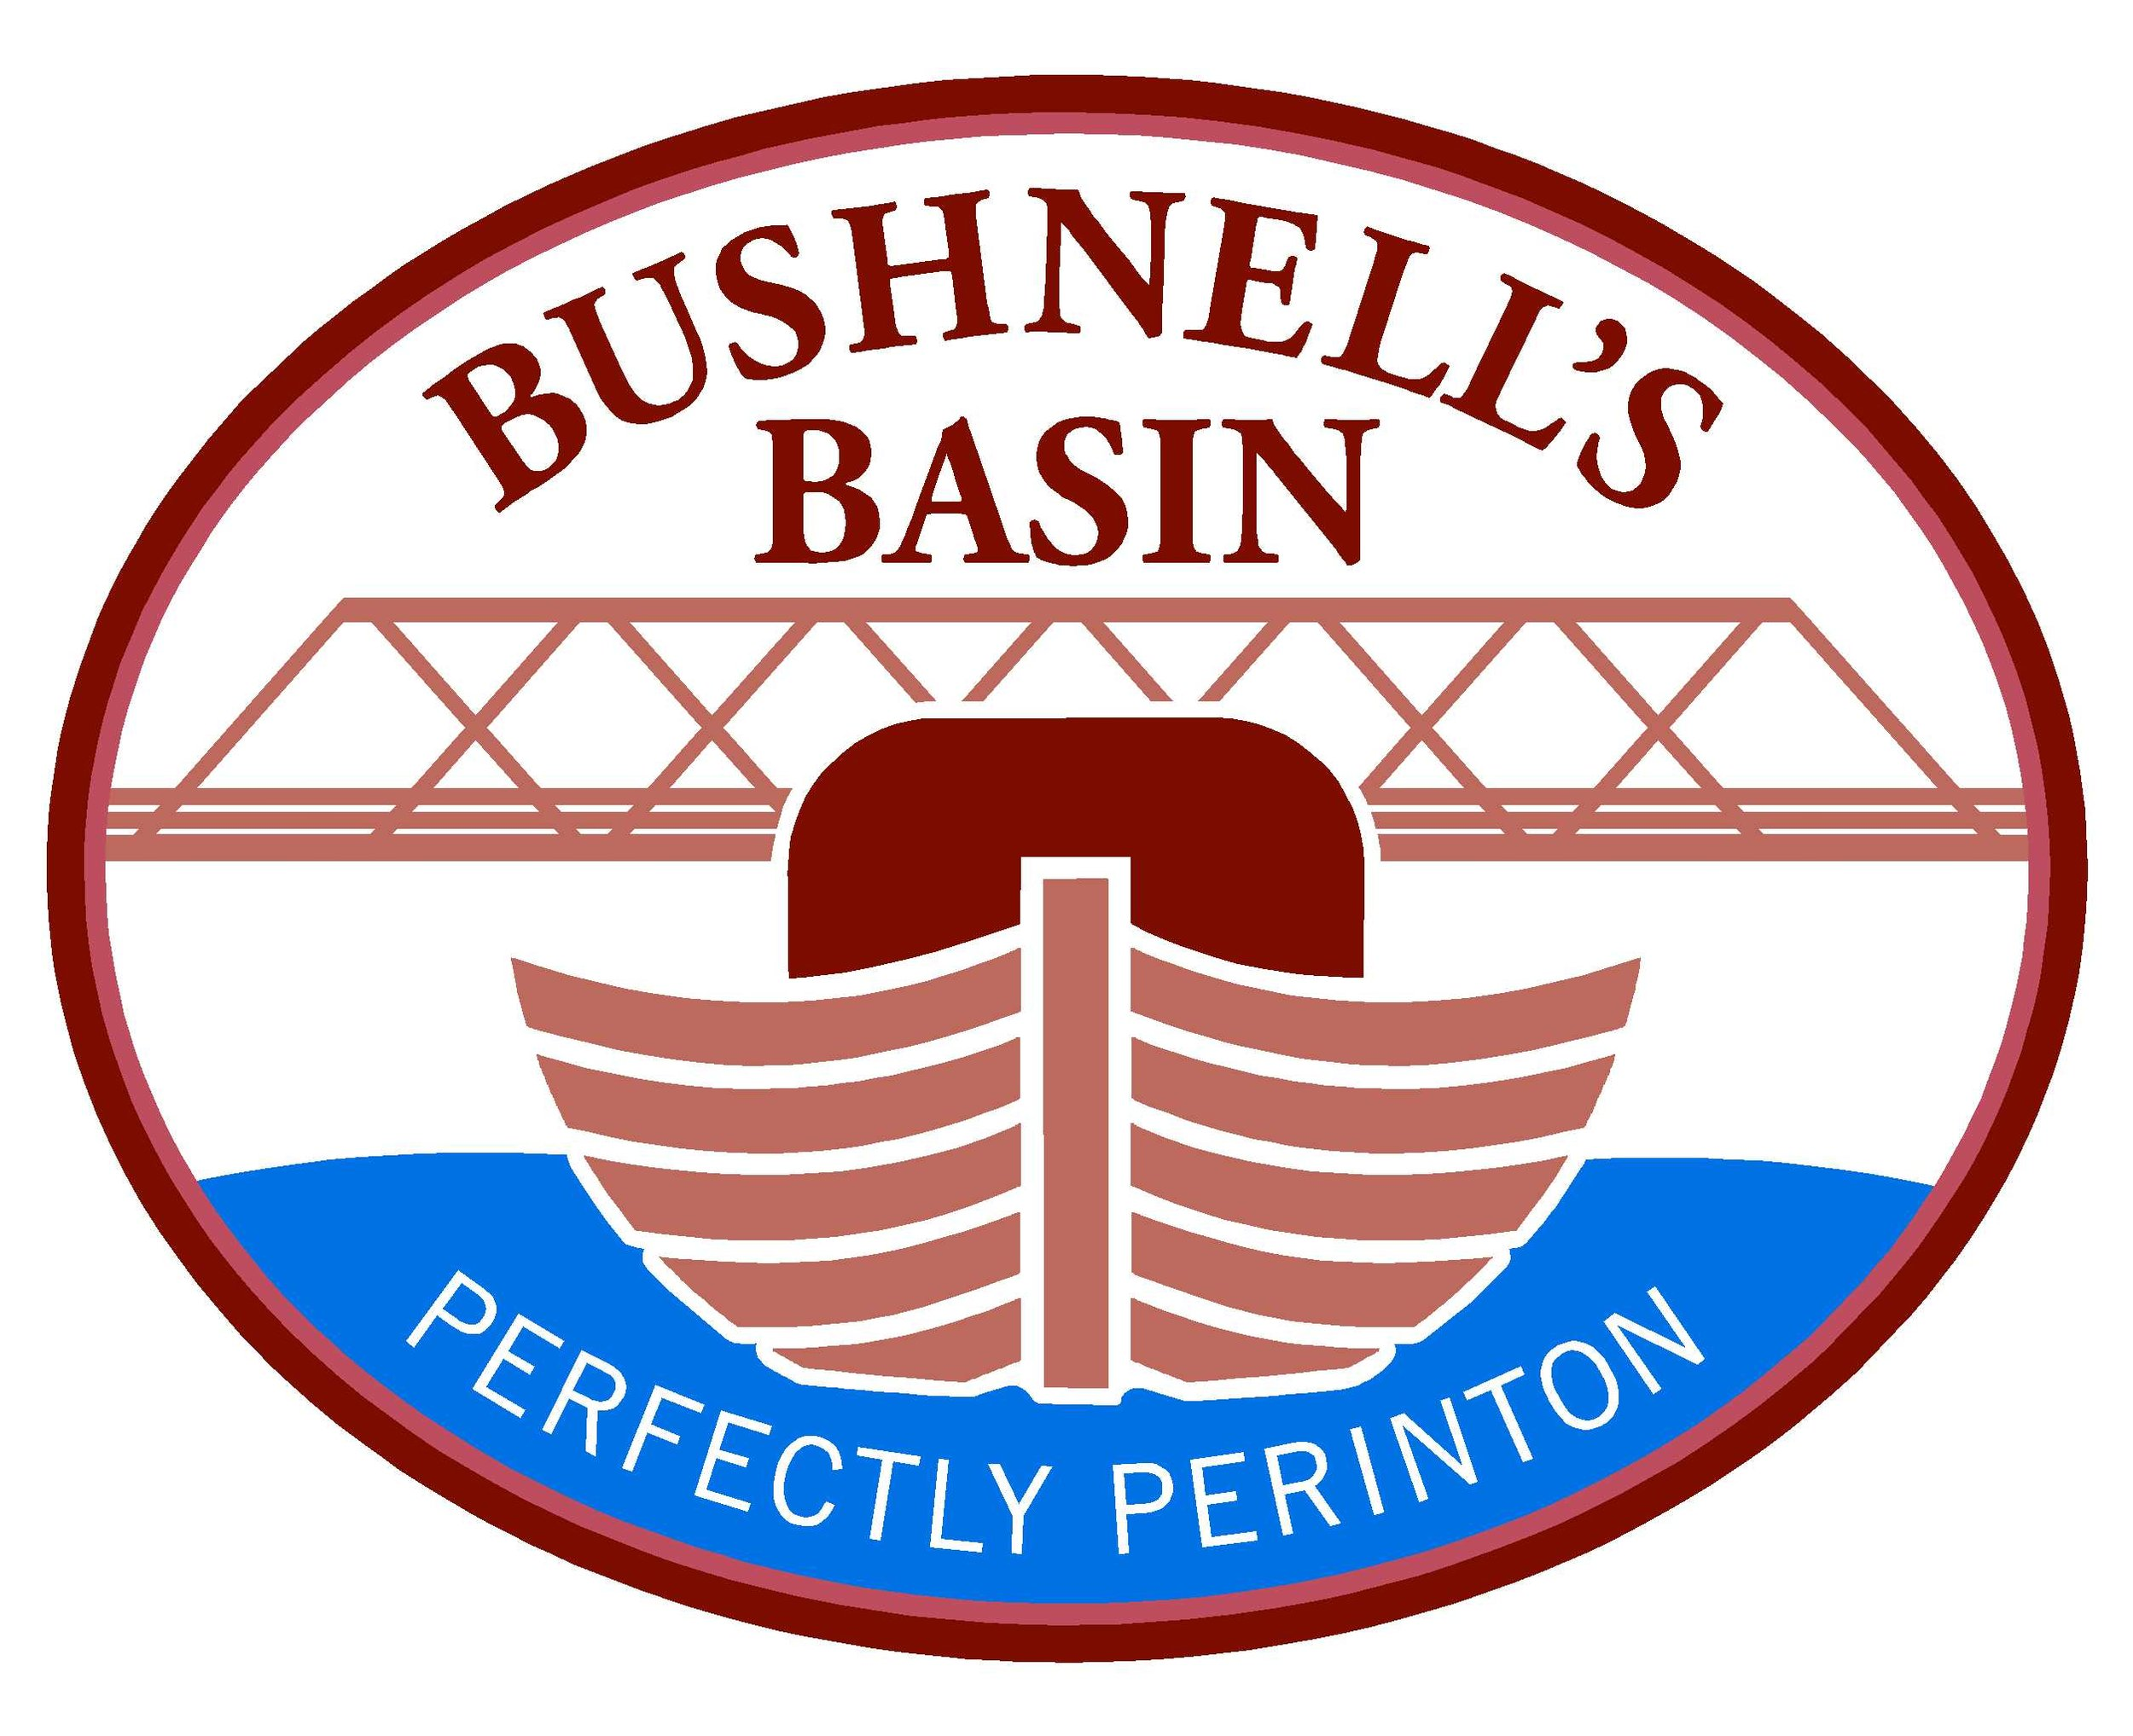 """Despite its misleading zip code, the """"Basin"""" is most definitely in the Town of Perinton - and perfectly so. Hence our logo and tag line to reinforce that fact."""